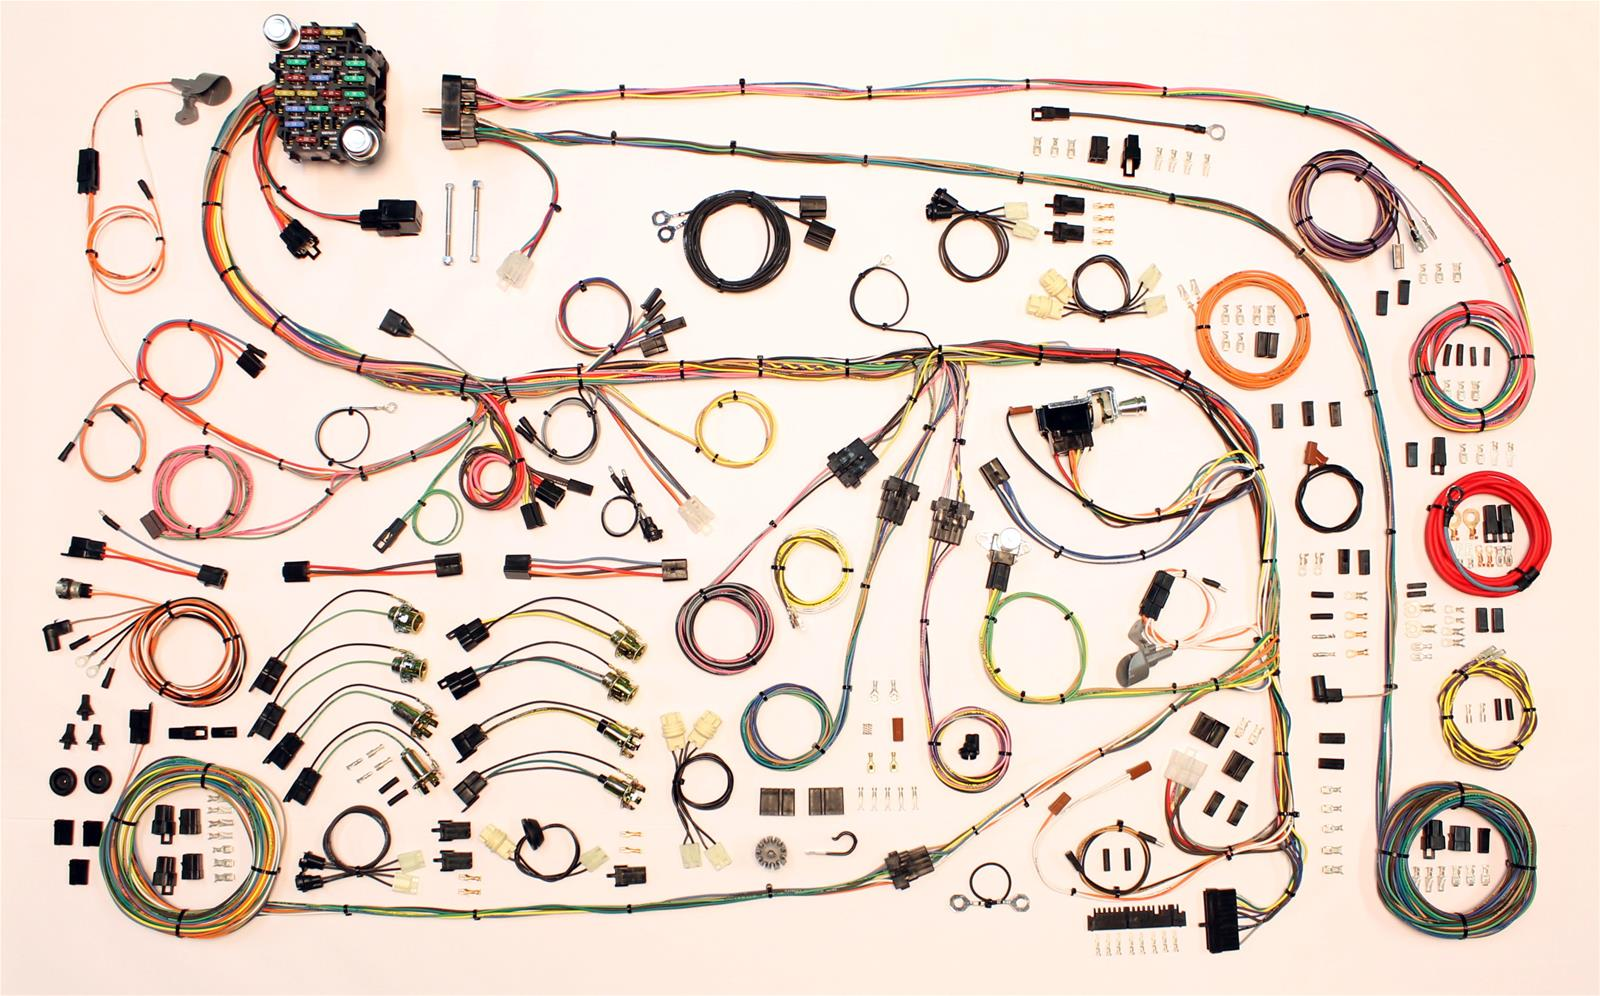 american autowire classic update series wiring harness kits 510603 american autowire classic update series wiring harness kits 510603 shipping on orders over 99 at summit racing